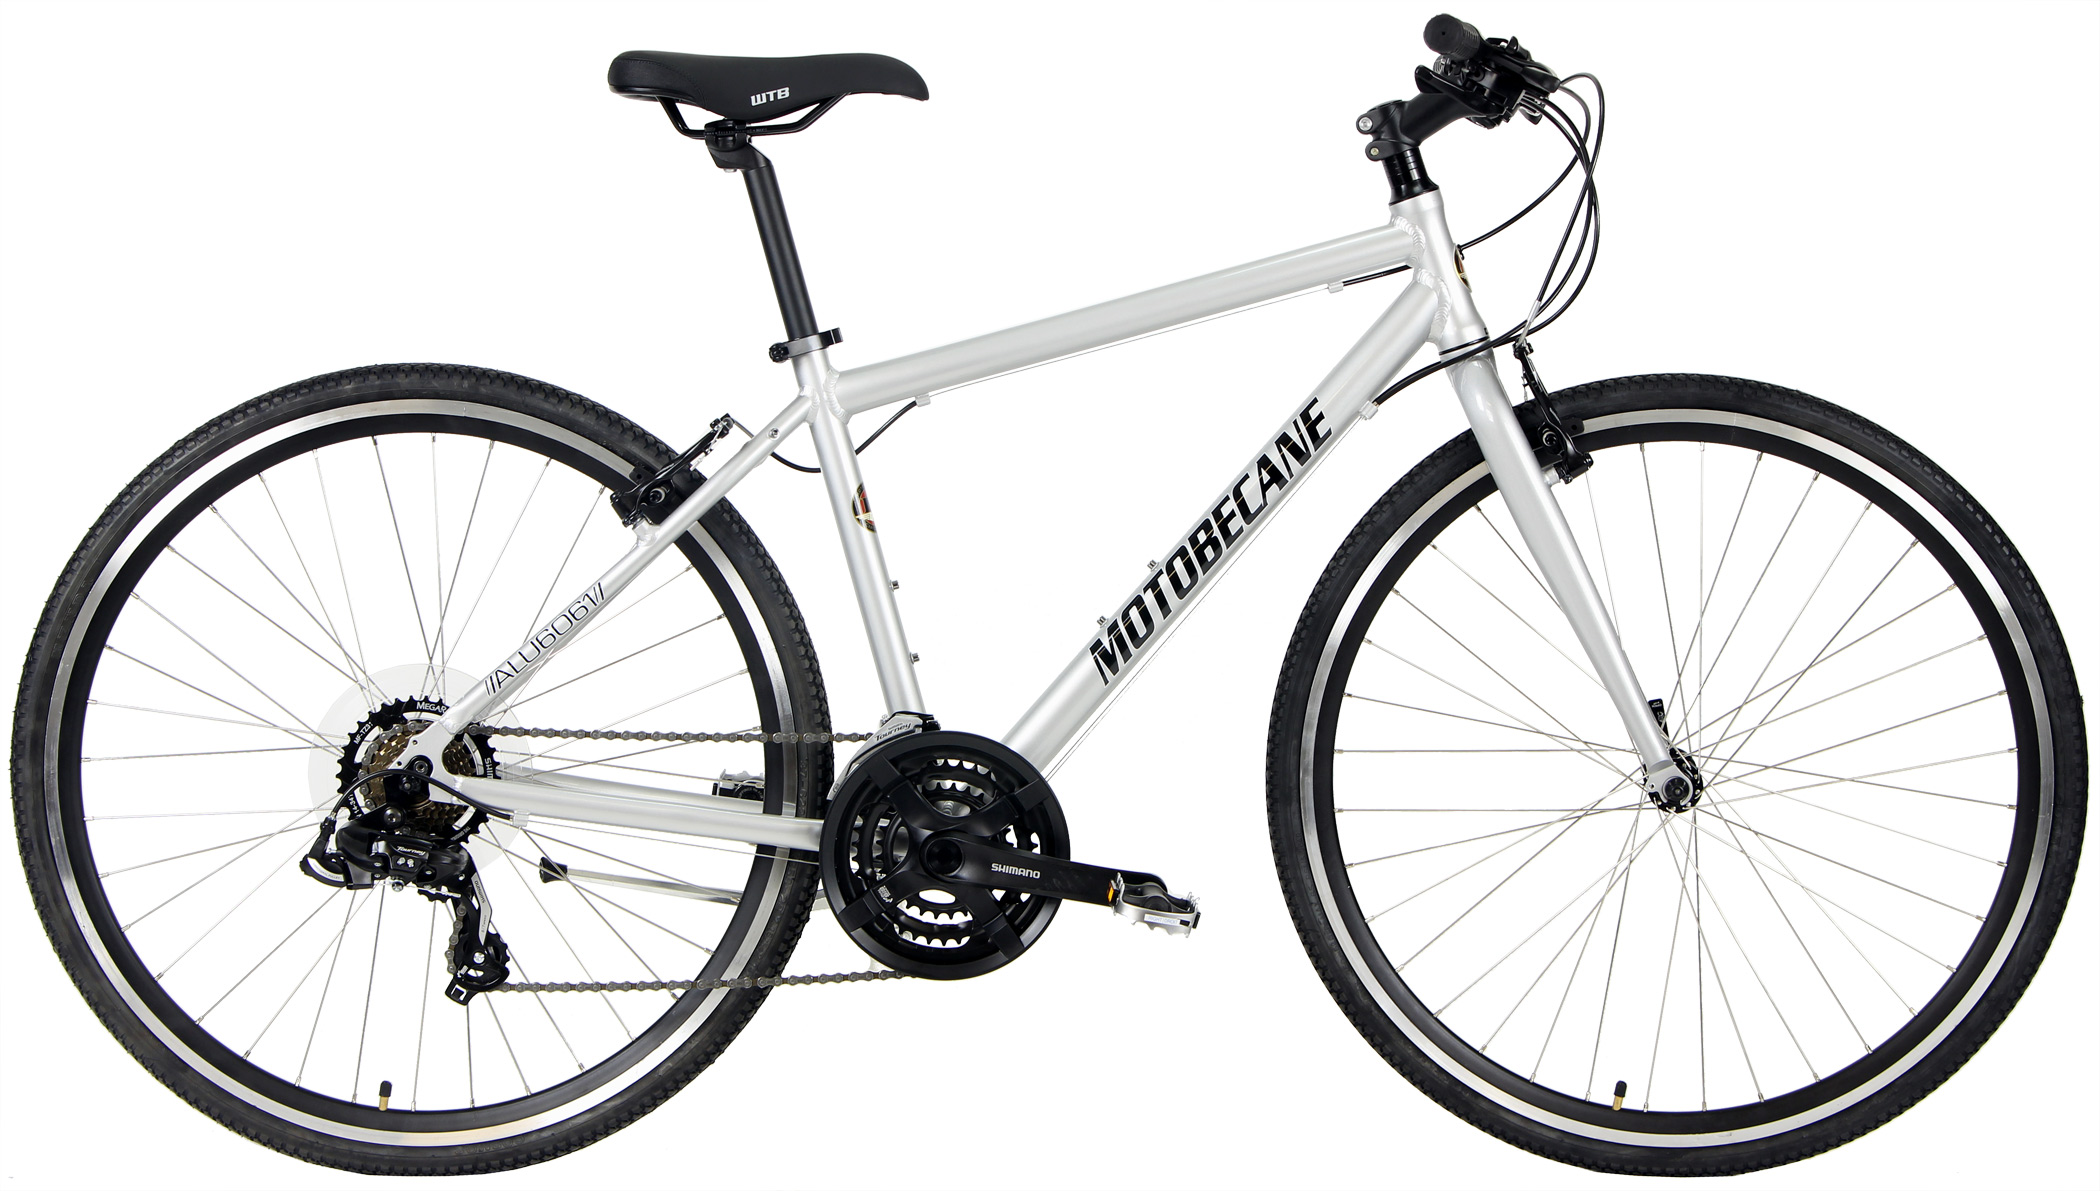 Save up to 60% off new Lifestyle Hybrid Bikes, Cafe Bikes